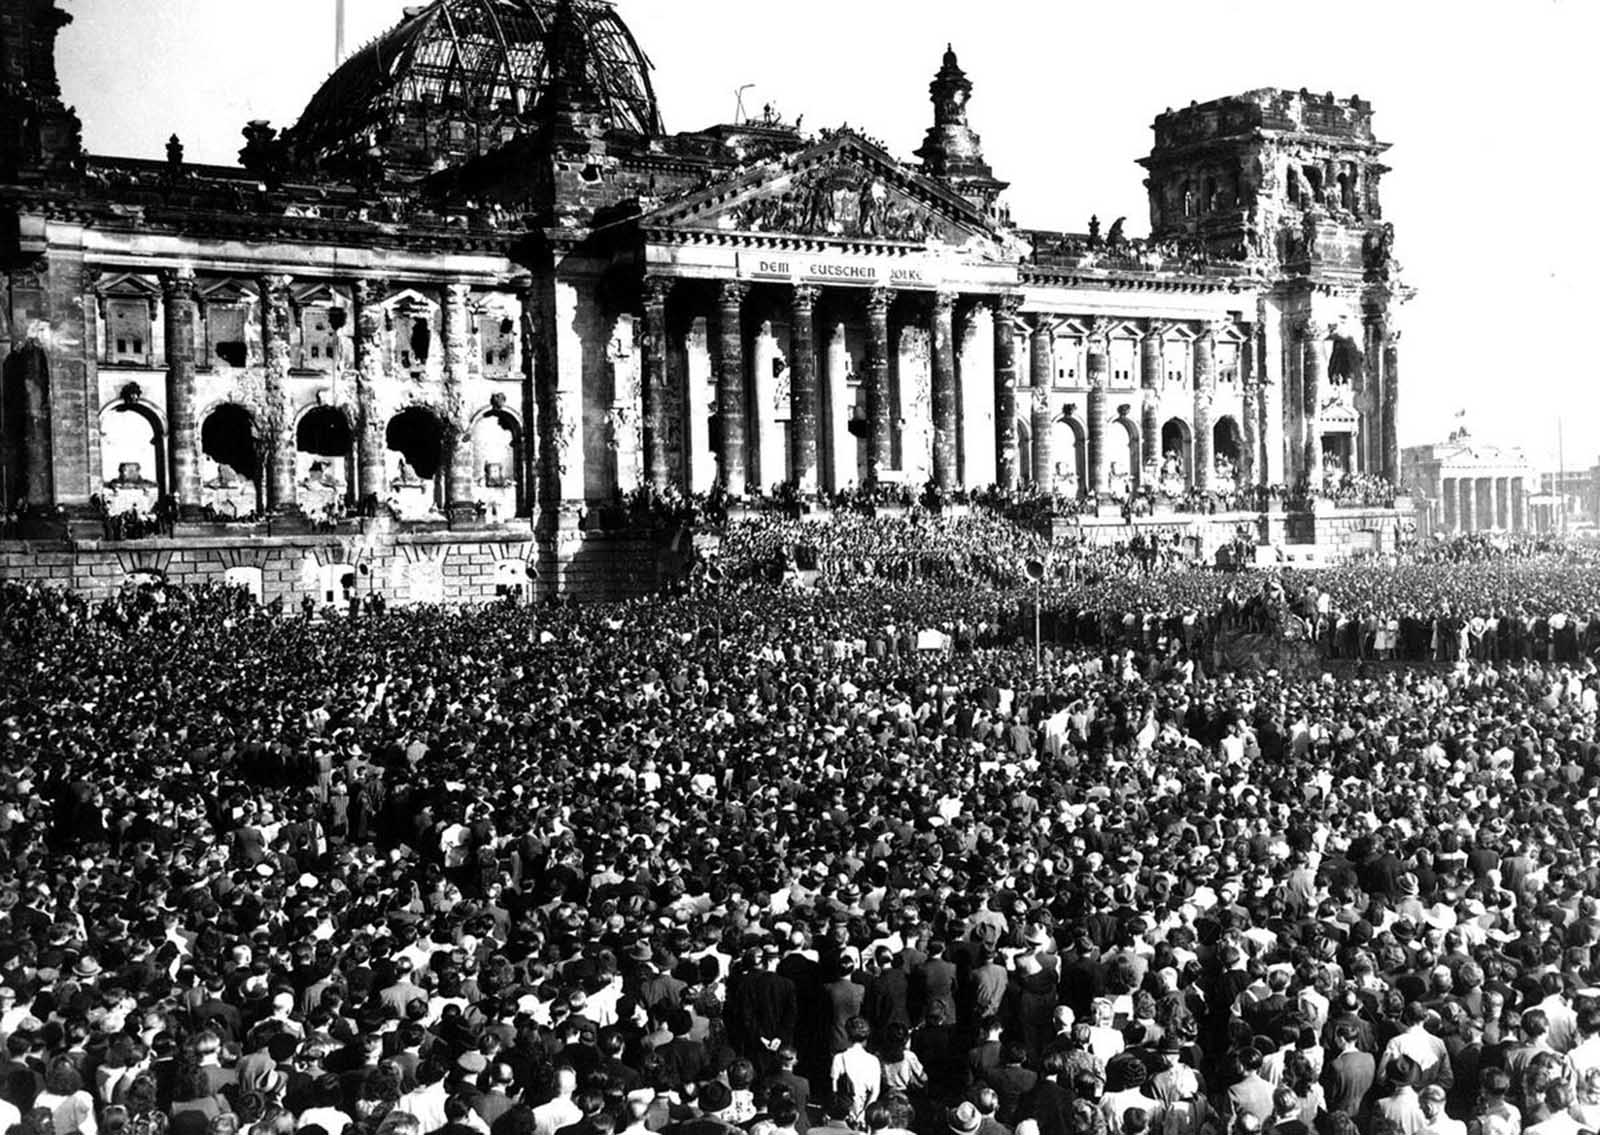 The scene in Berlin's Republic Square, before the ruined Reichstag Building, on September 9, 1948, as Anti-Communists, estimated at a quarter of a million, scream their opposition to Communism. At the time, the Soviet Union was enforcing the Berlin Blockade, blocking Allied access to the parts of Berlin under Allied control. In response, Allies began the Berlin Airlift until the Soviets lifted the blockade in 1949, and East Germany and West Germany were established. When the meeting pictured here broke up, a series of incidents between Anti-Red Germans and Soviet troops brought tension to a fever pitch as shootings took place, resulting in the deaths of two Germans.